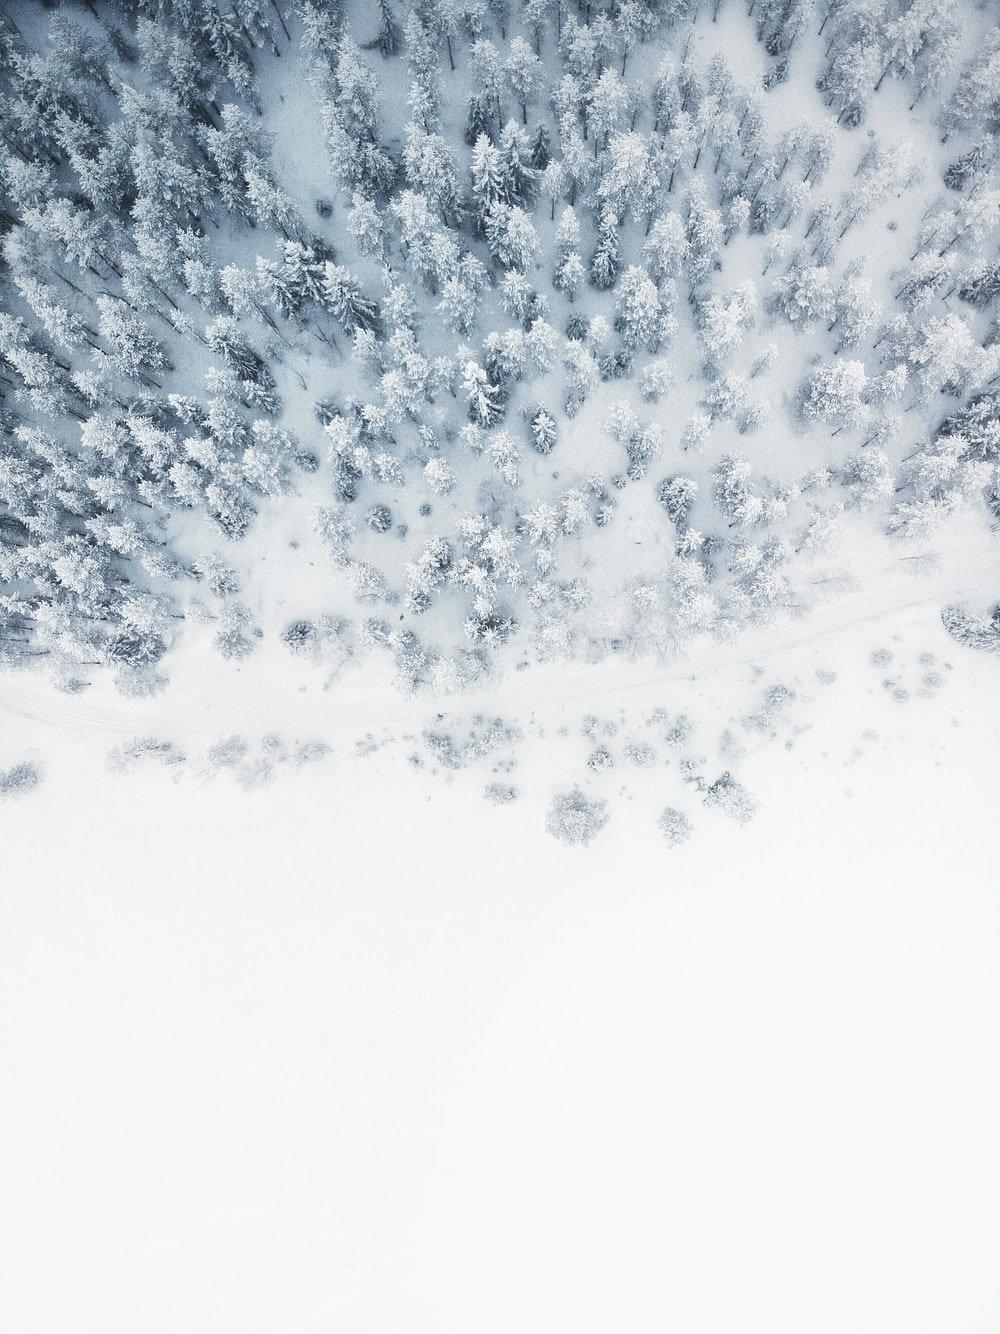 Snow Wallpapers Free Hd Download 500 Hq Unsplash